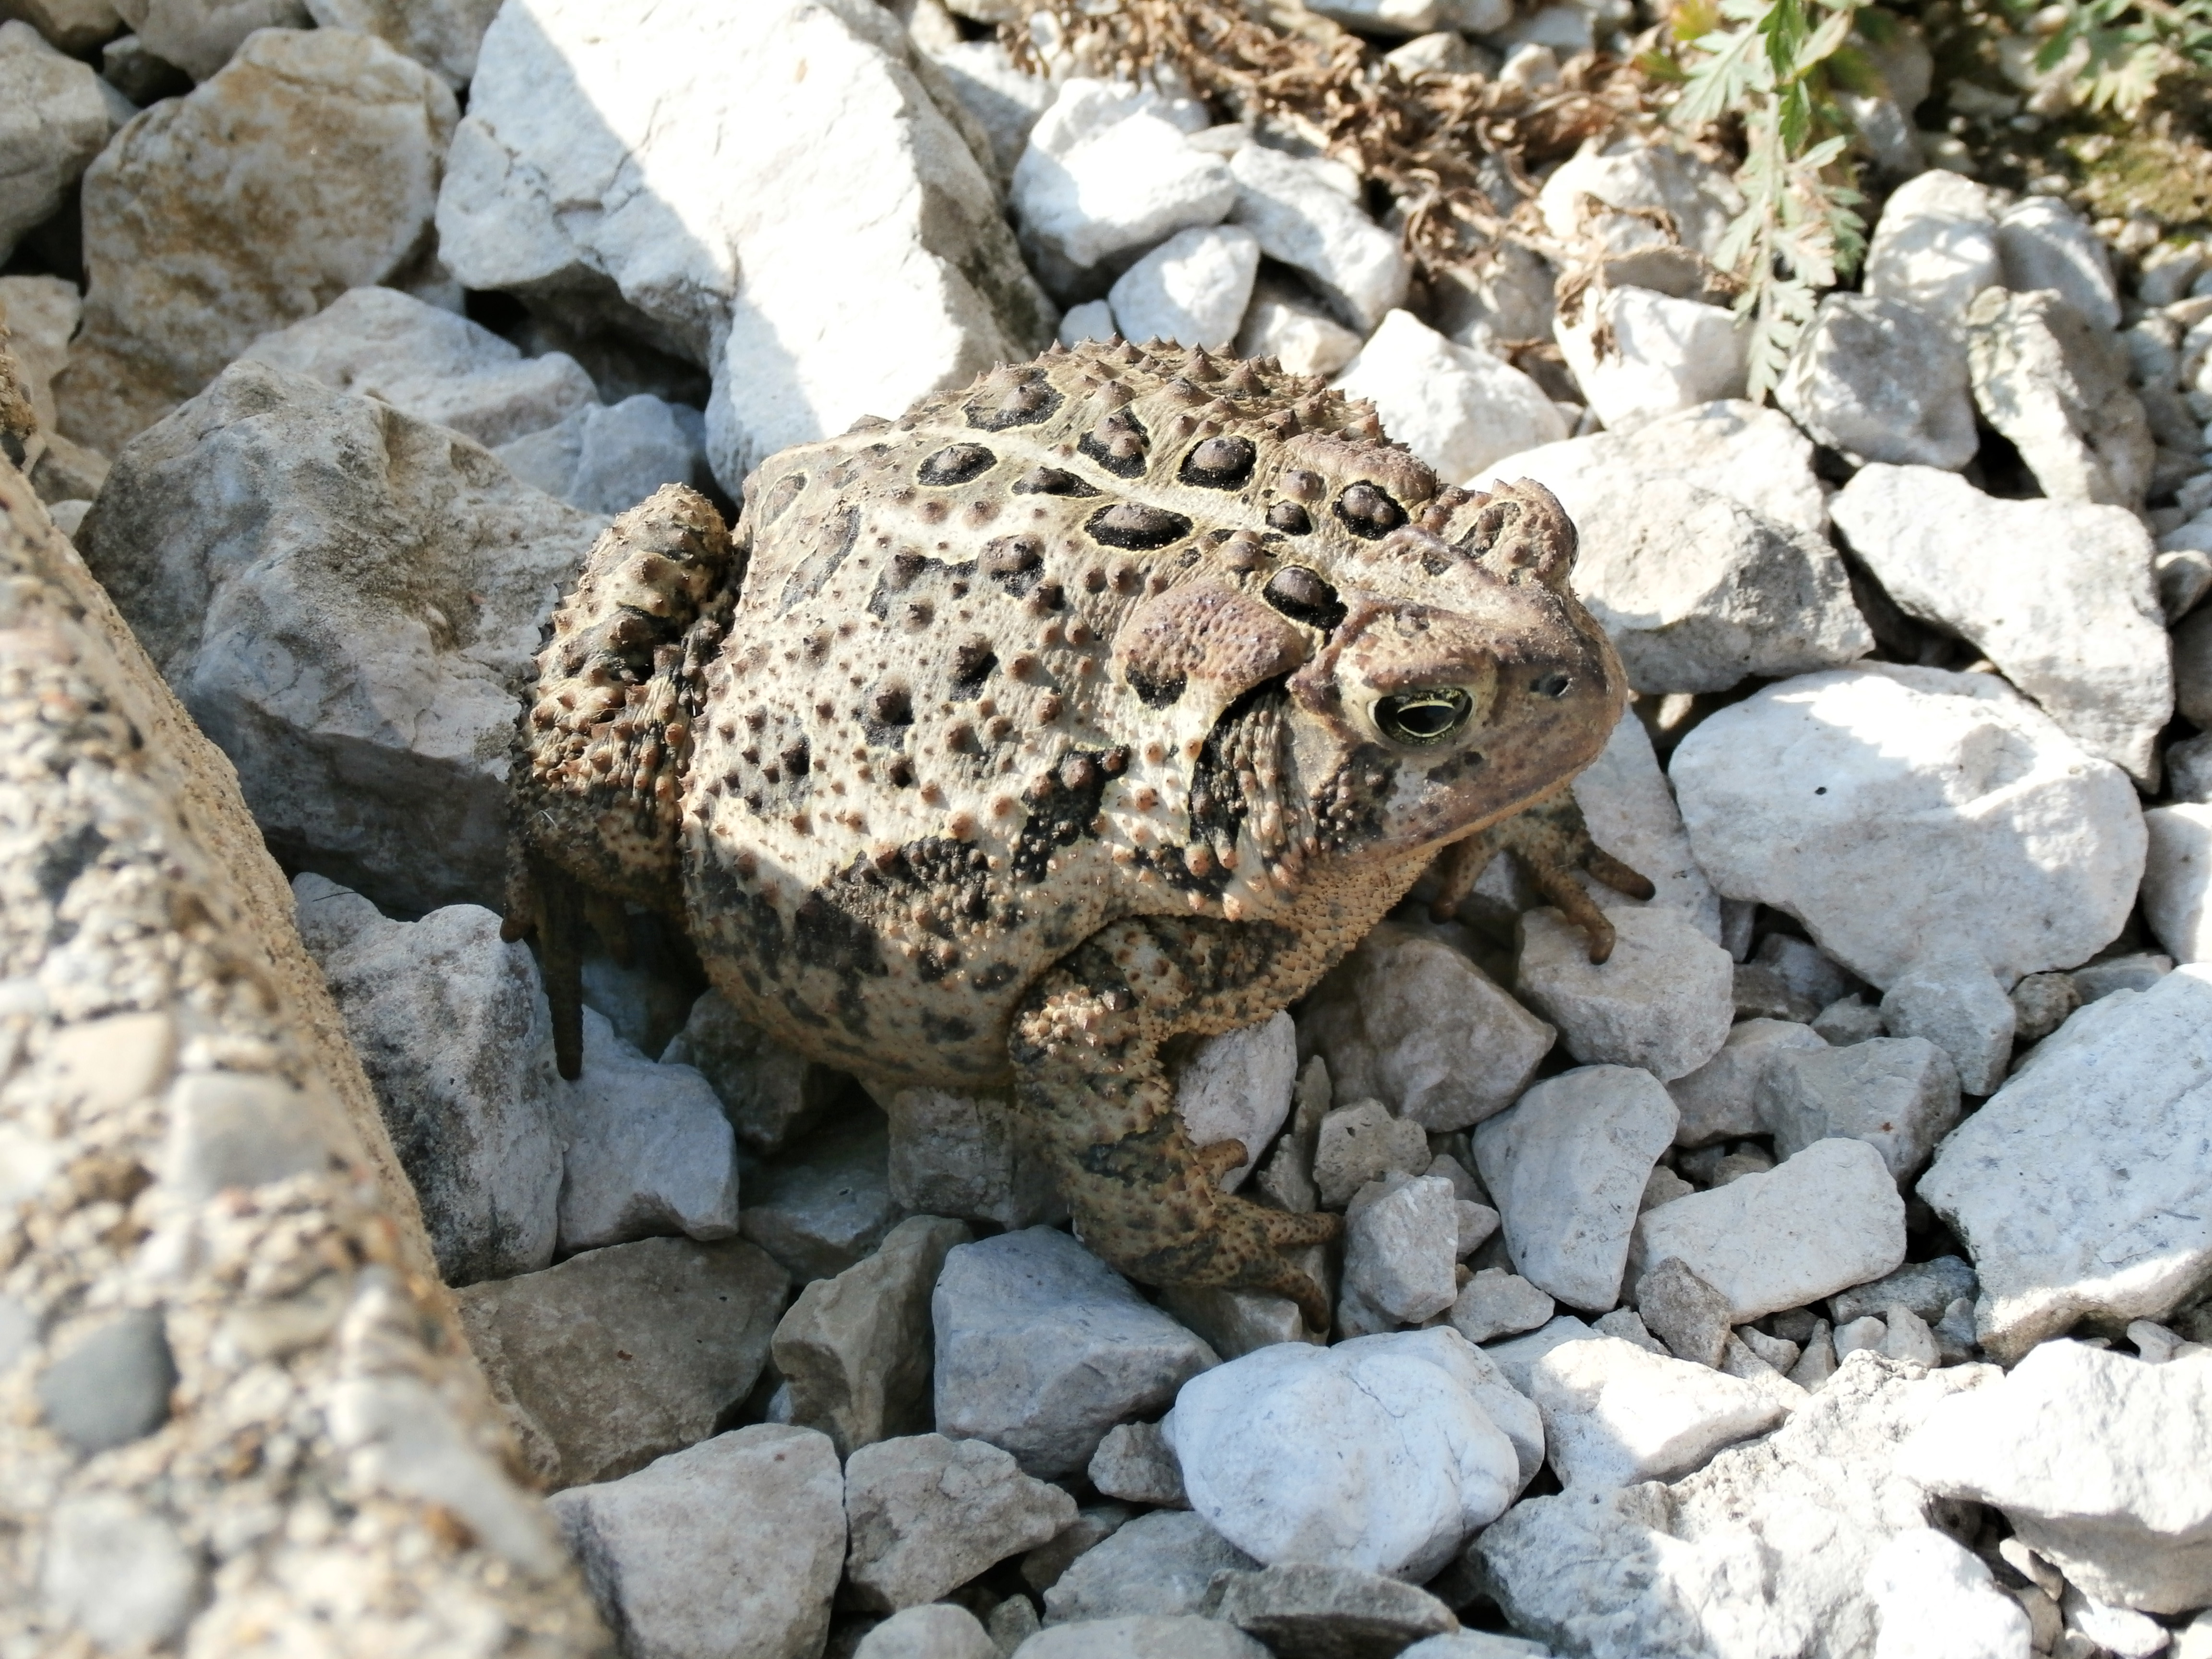 An American toad settles on the rocks by MI-62. Photo: Jamie Clemons, AD